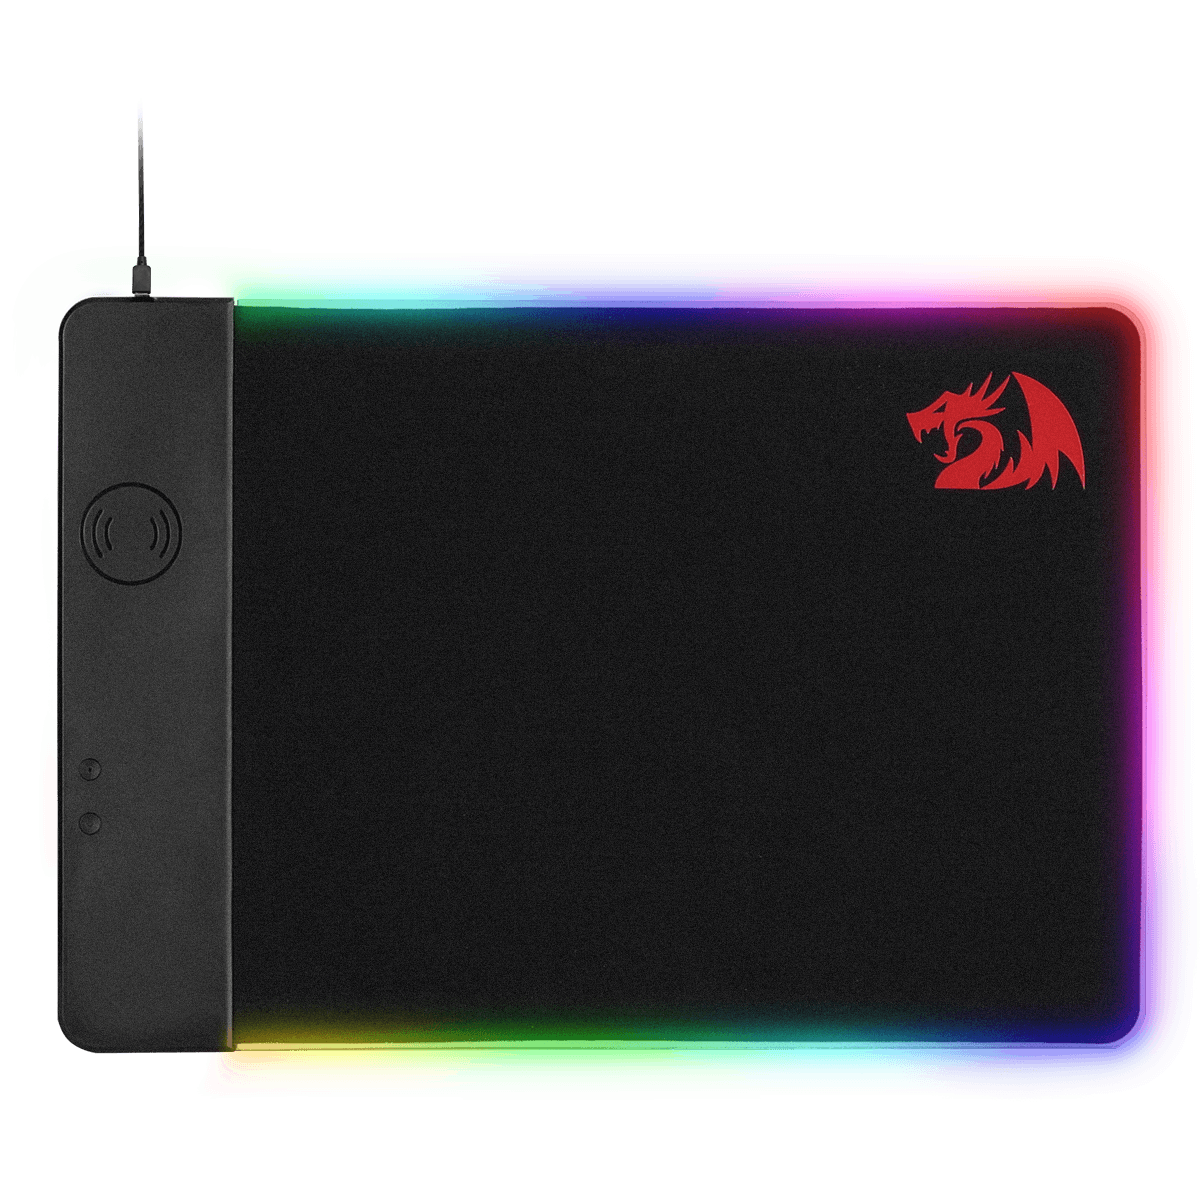 Redragon-P025-Mousepad-1